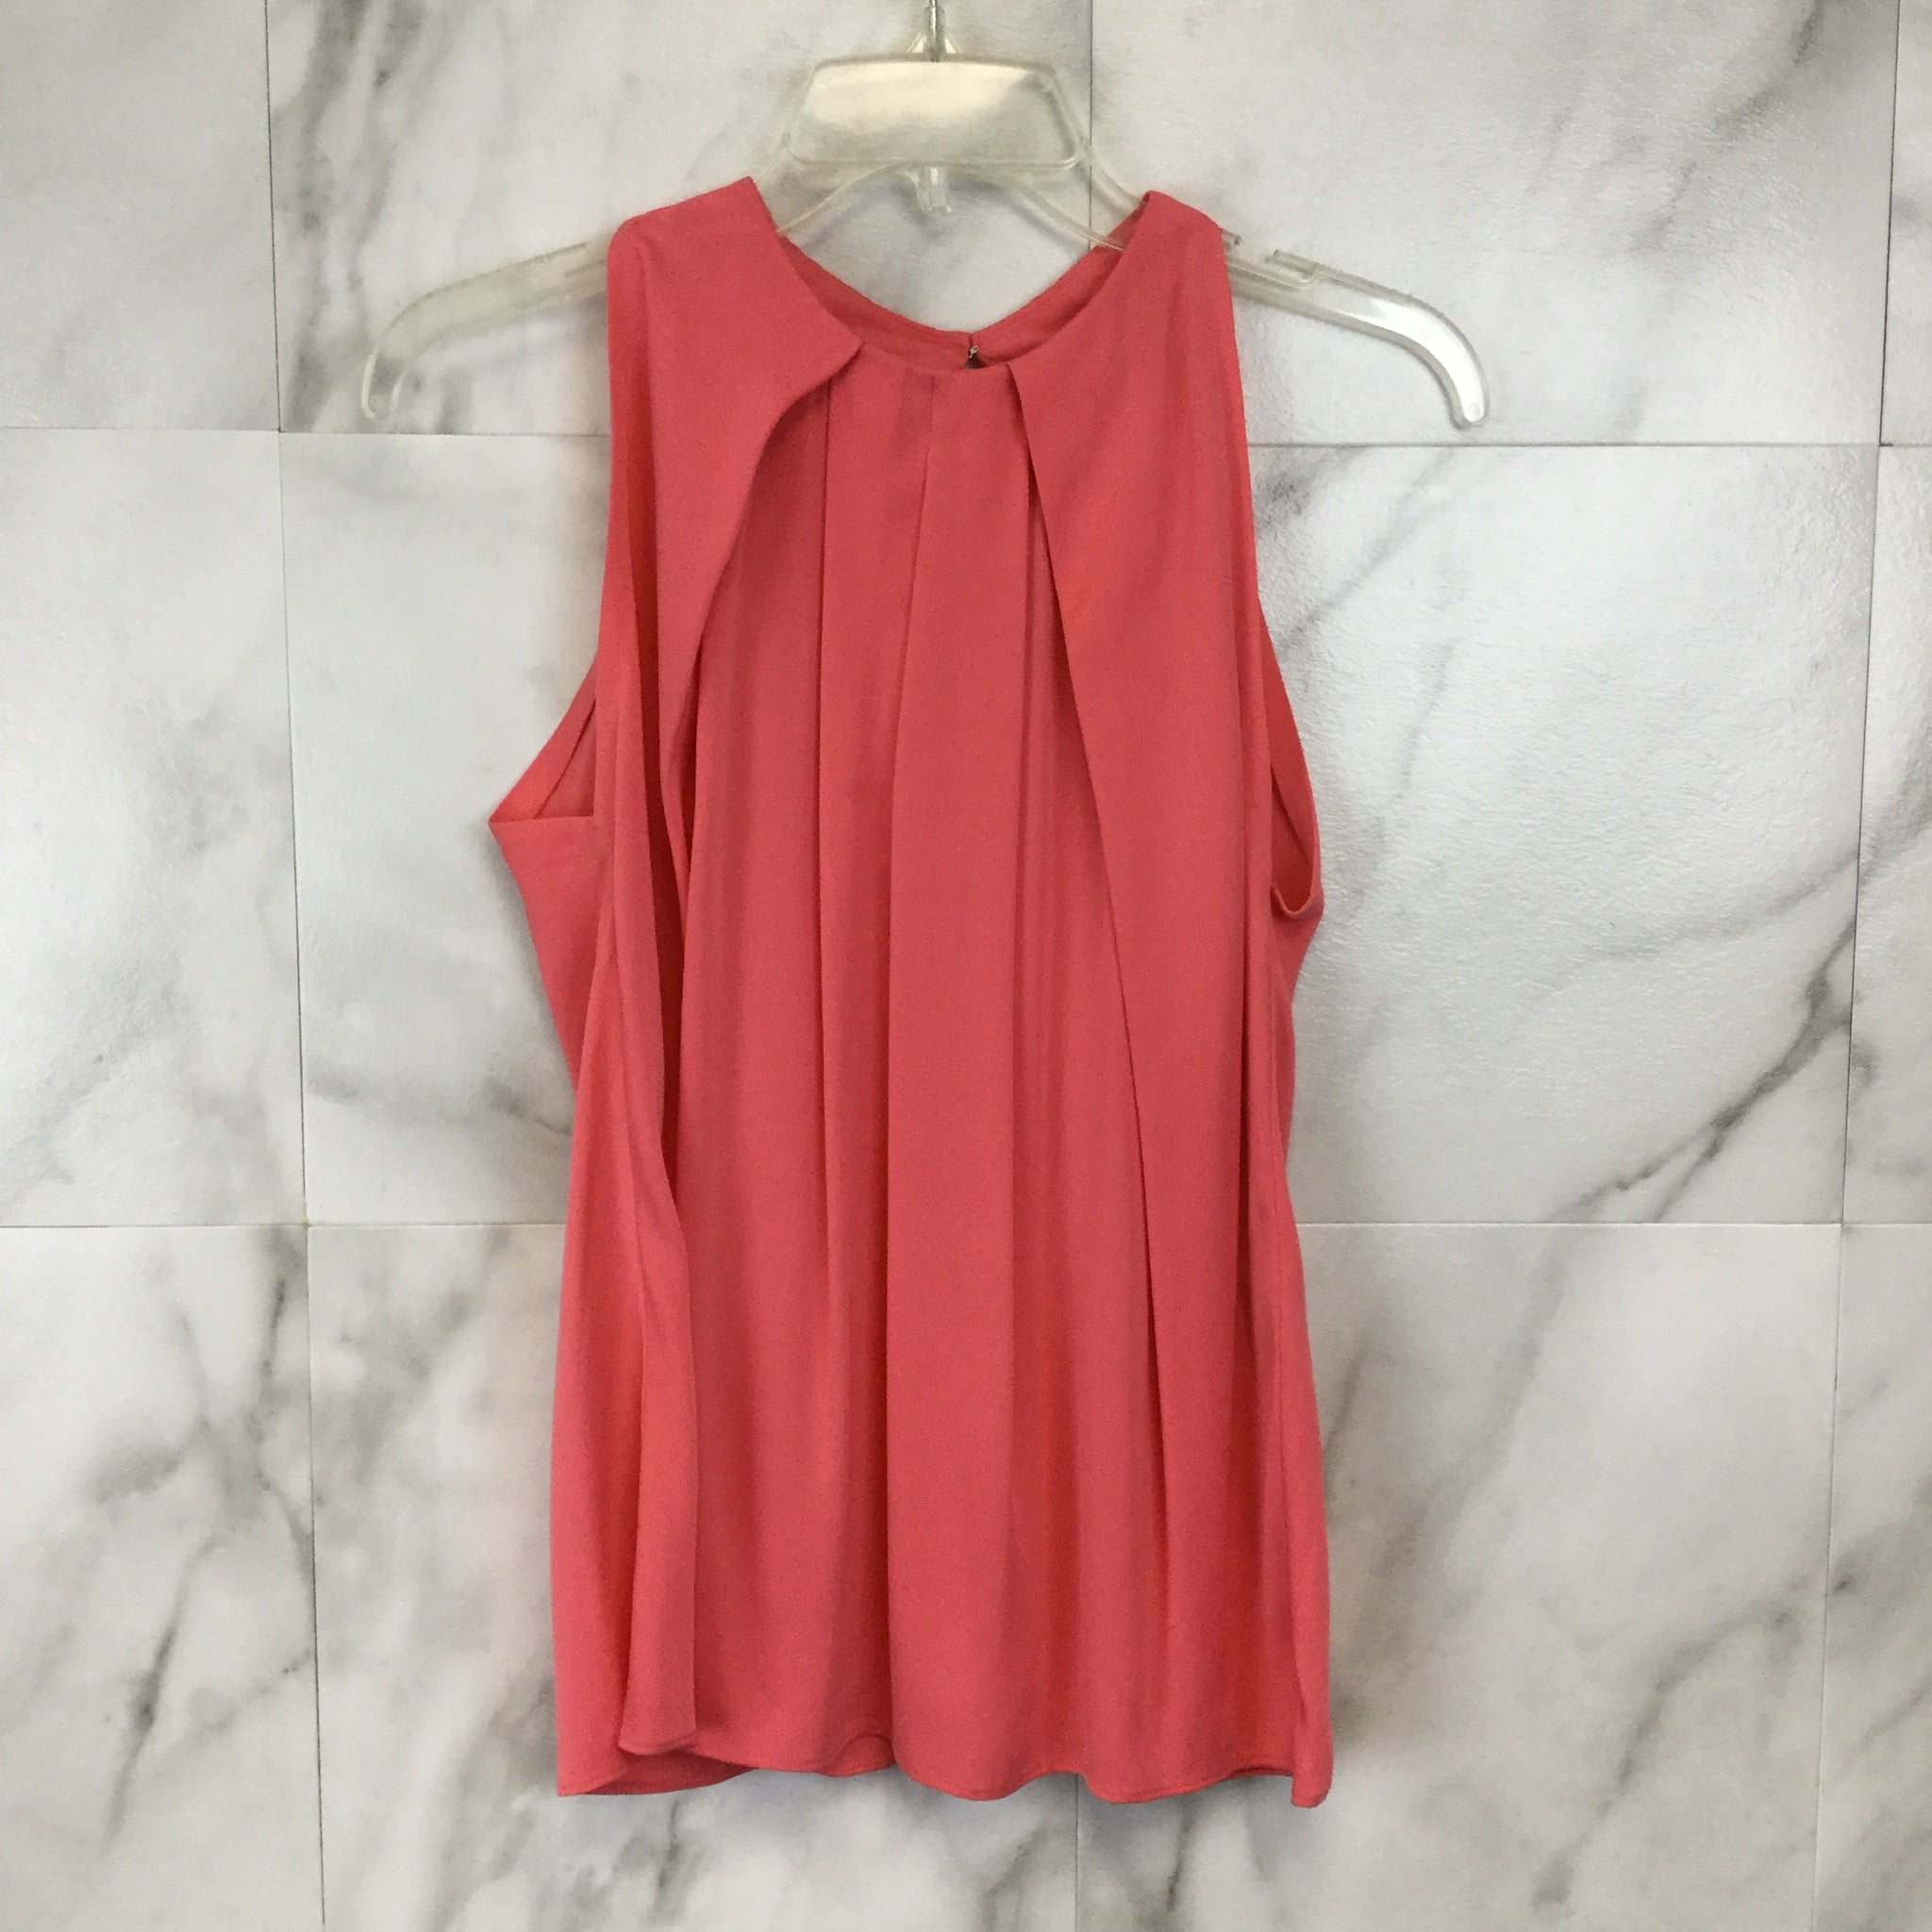 Diane Von Furstenberg Wide Pleated Tank Top - Size 4